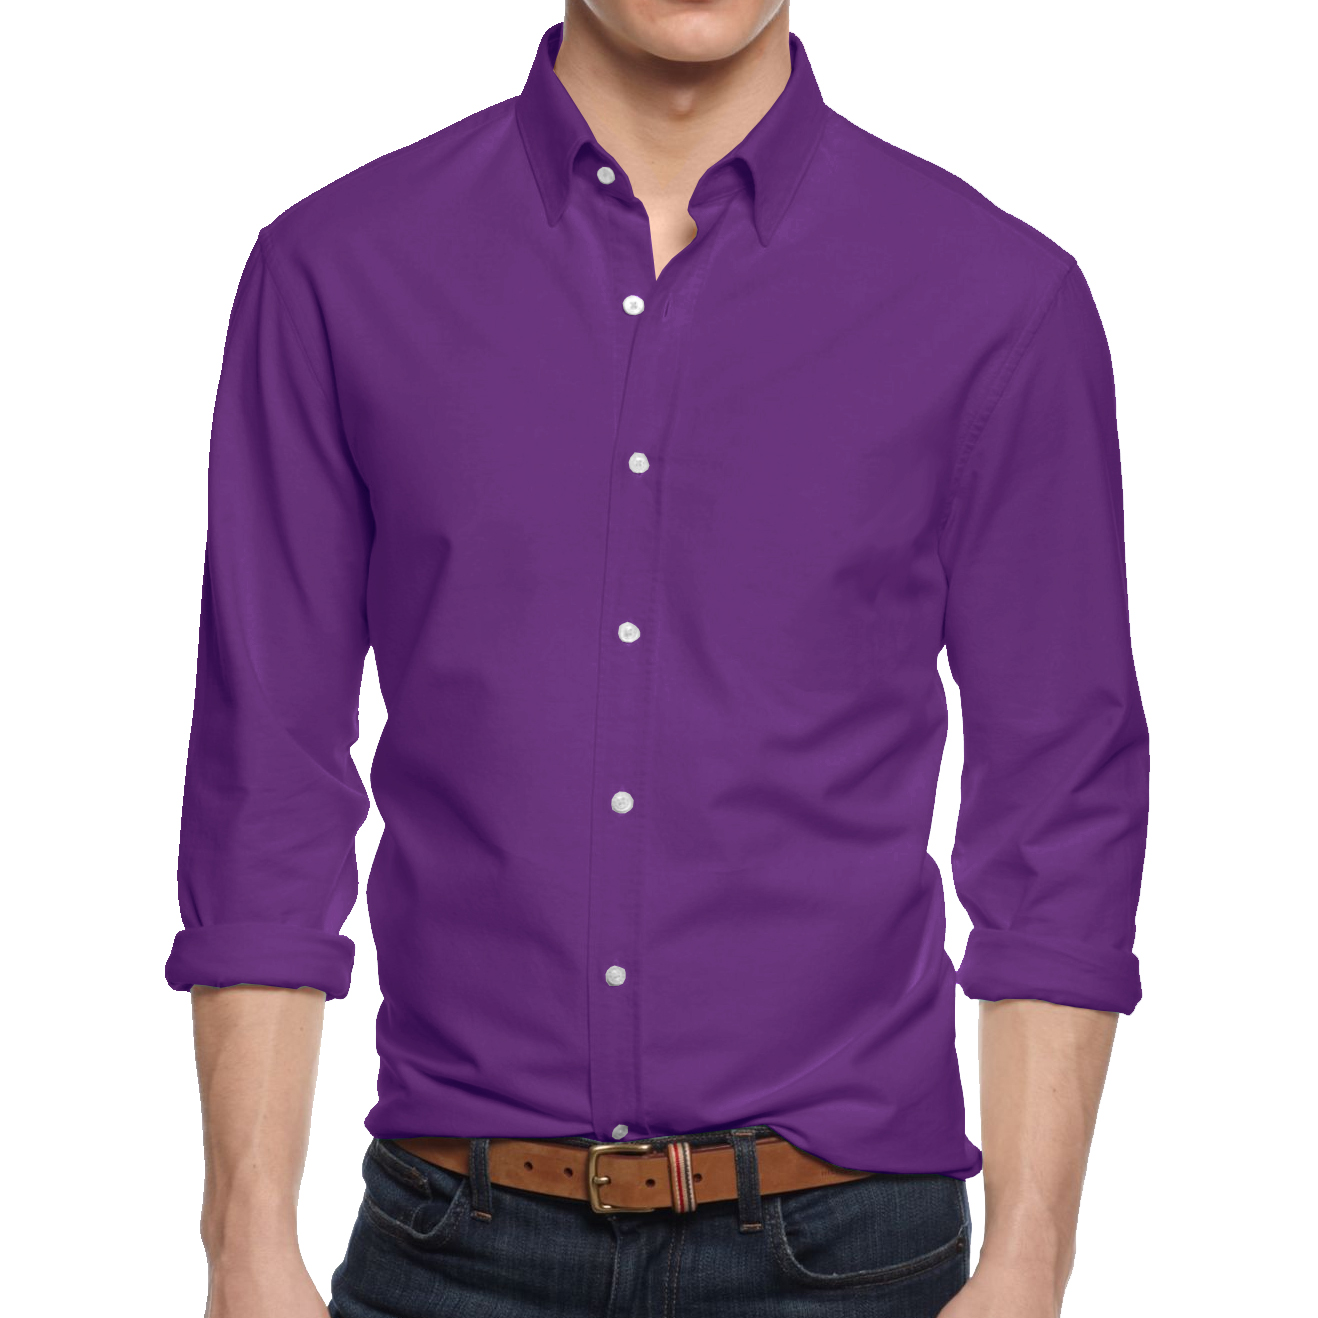 Shop mens shirts cheap sale online, you can buy dress shirts, long sleeve shirts, white shirts and button down shirts for men at wholesale prices on bestsupsm5.cf FREE Shipping available worldwide.